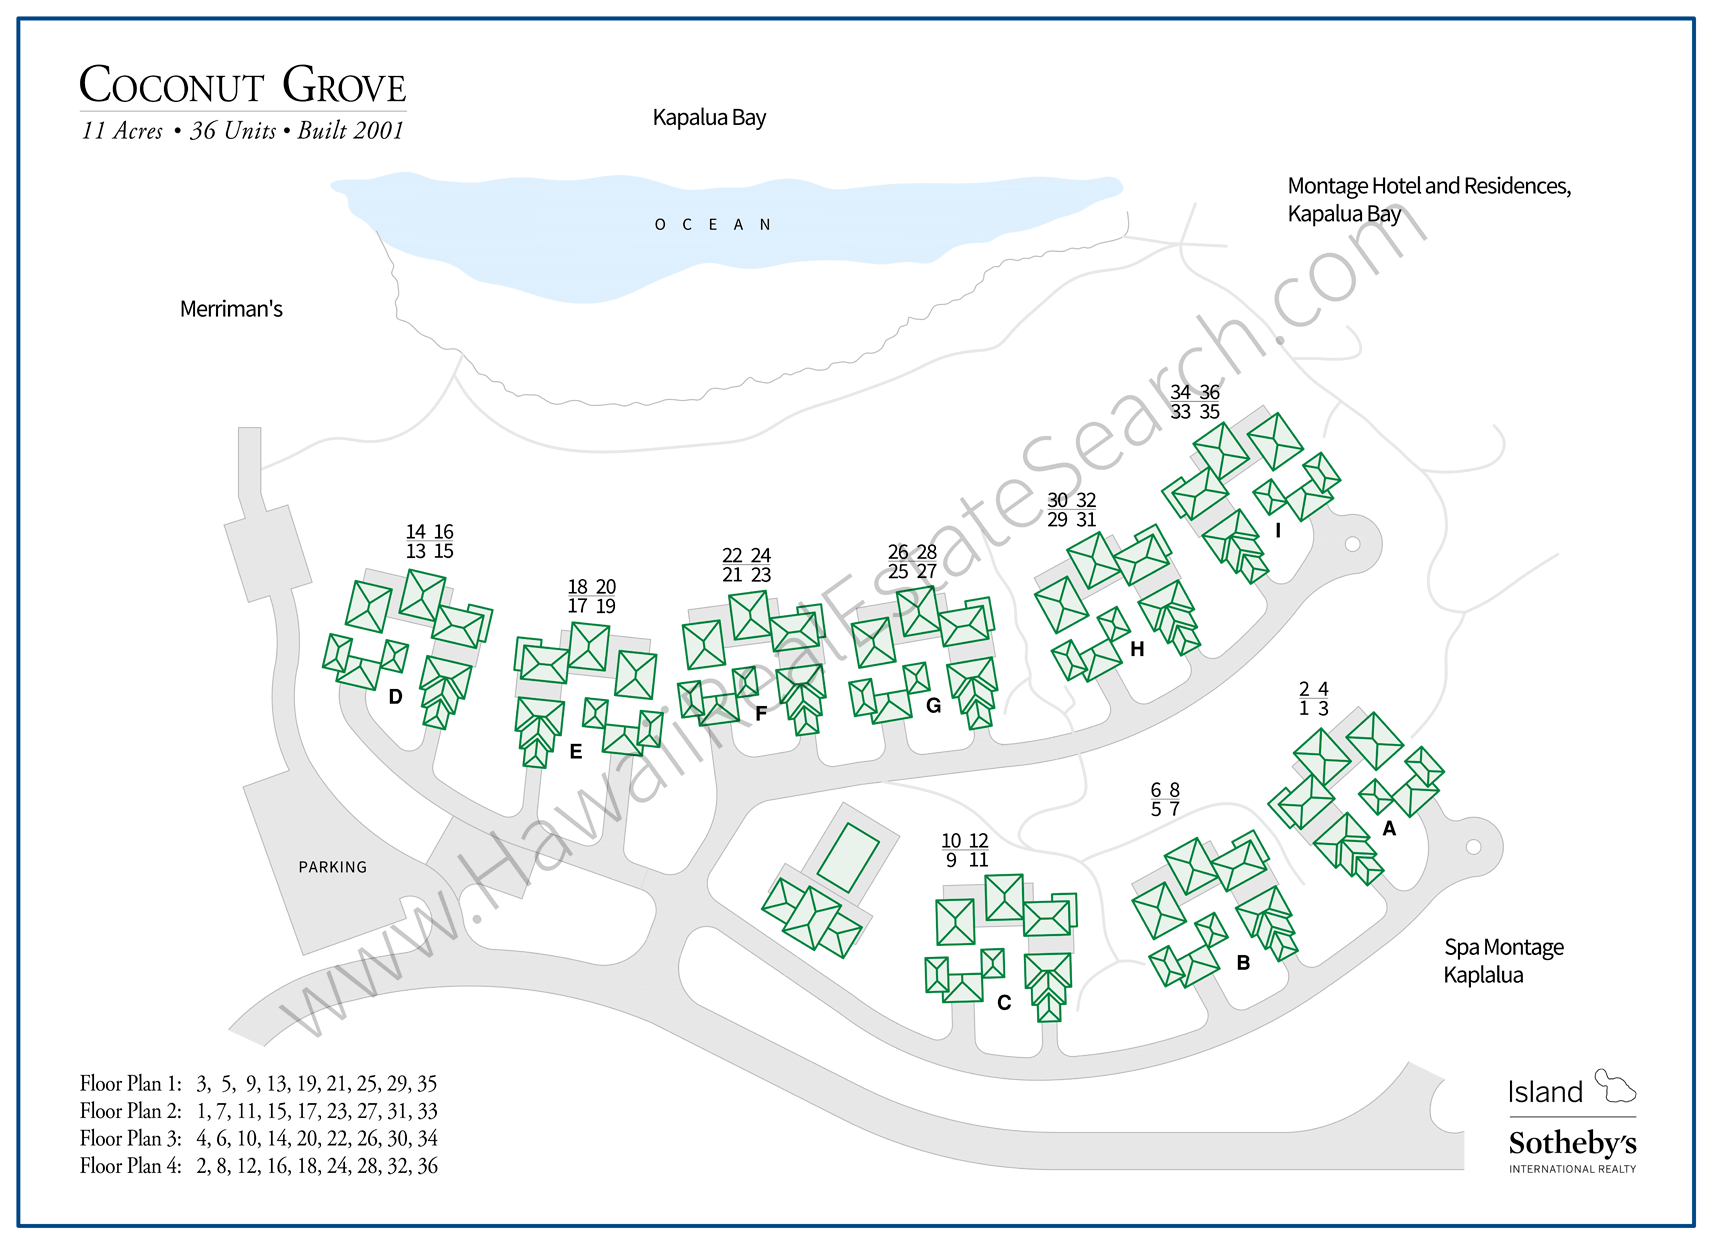 Kapalua Coconut Grove Property Map